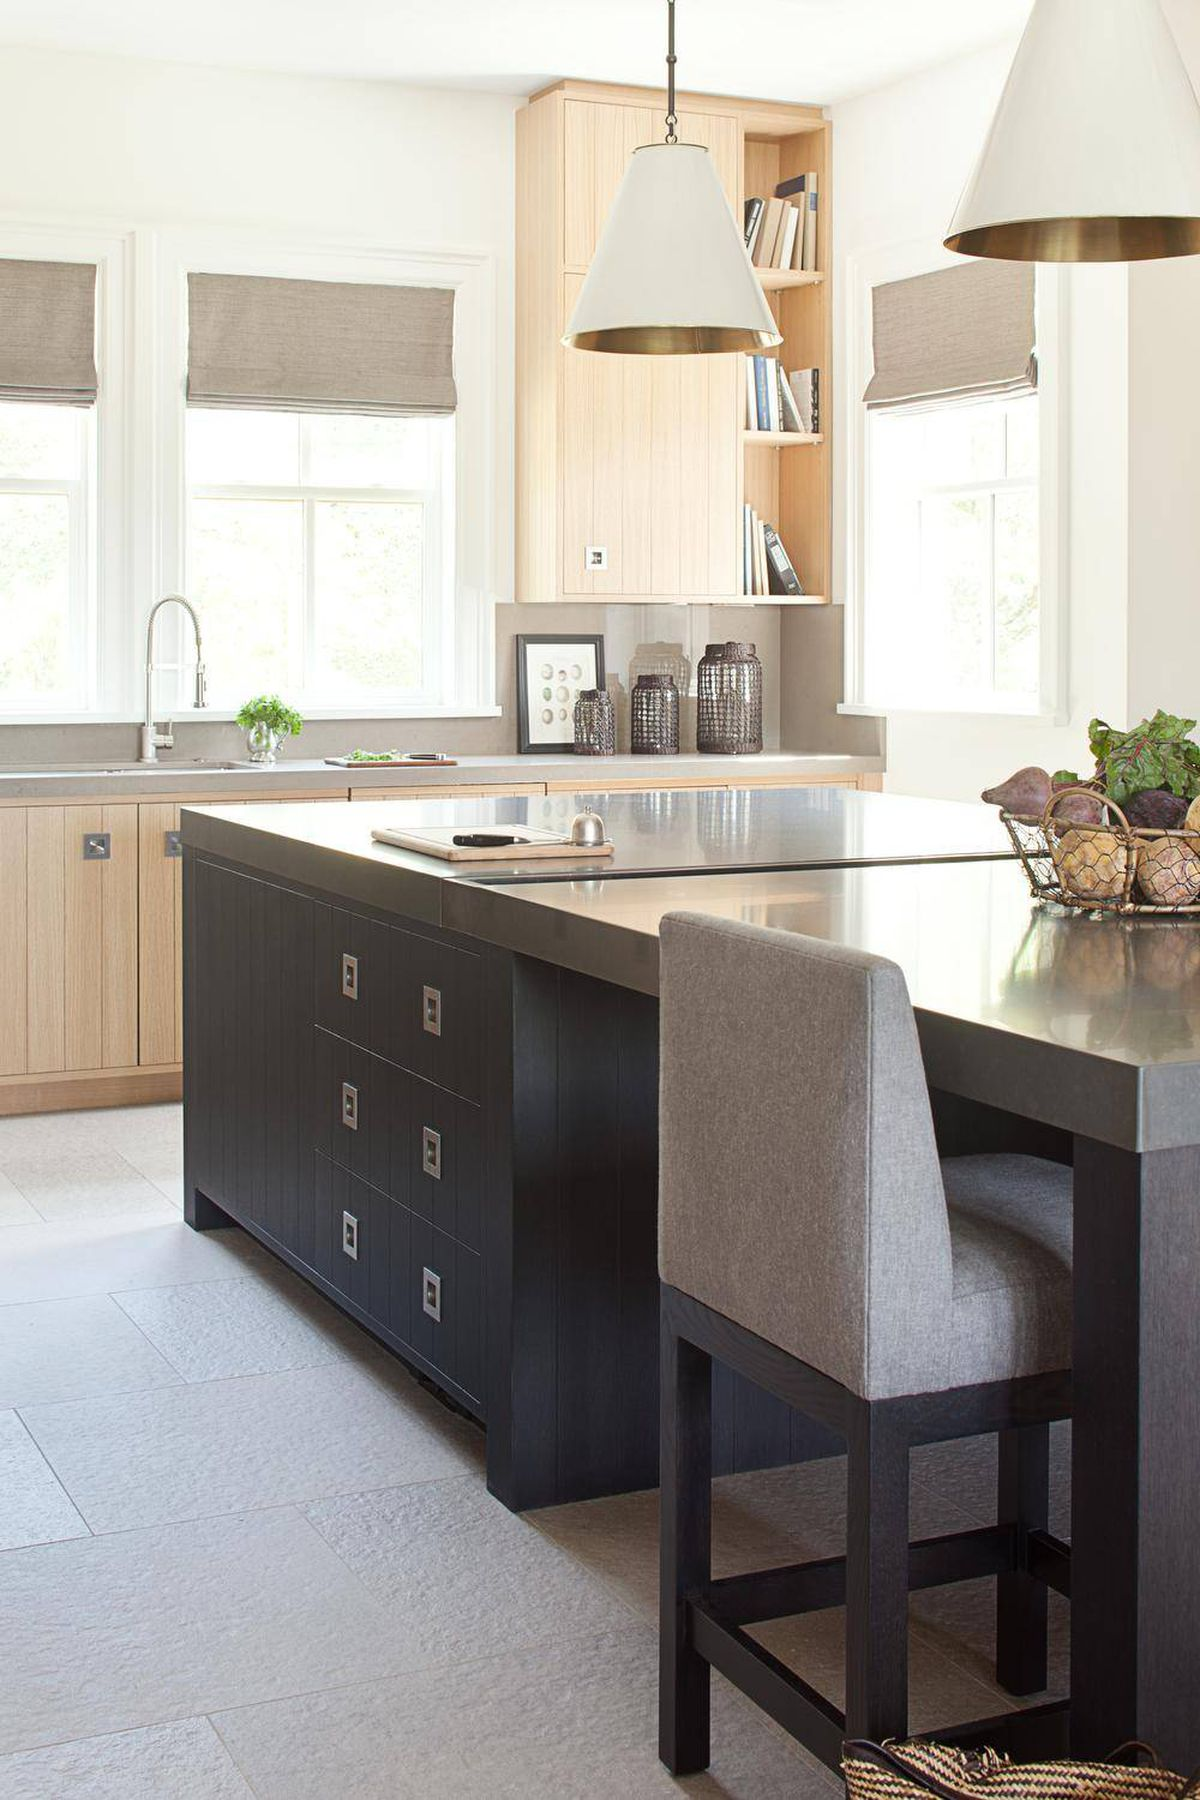 The ingredients for the perfect kitchen the globe and mail for Betahomes kitchen cabinets